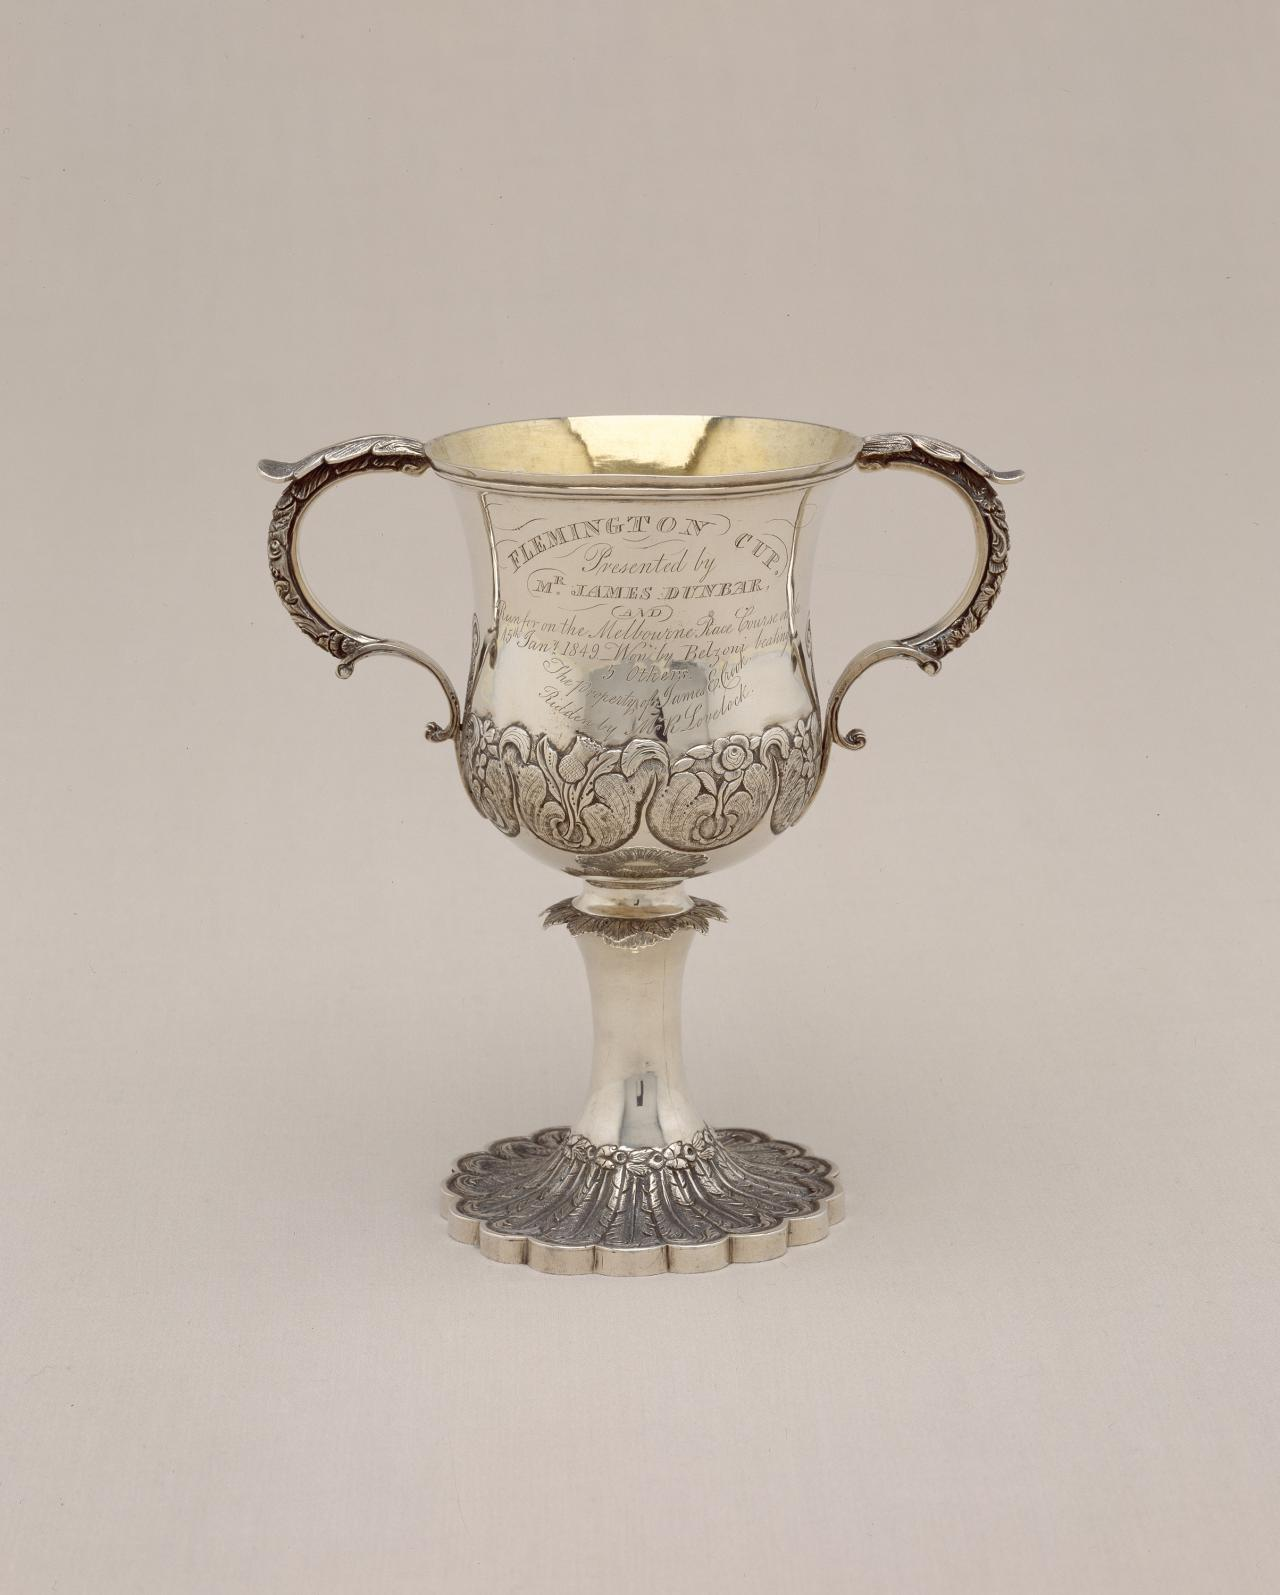 The Flemington Cup